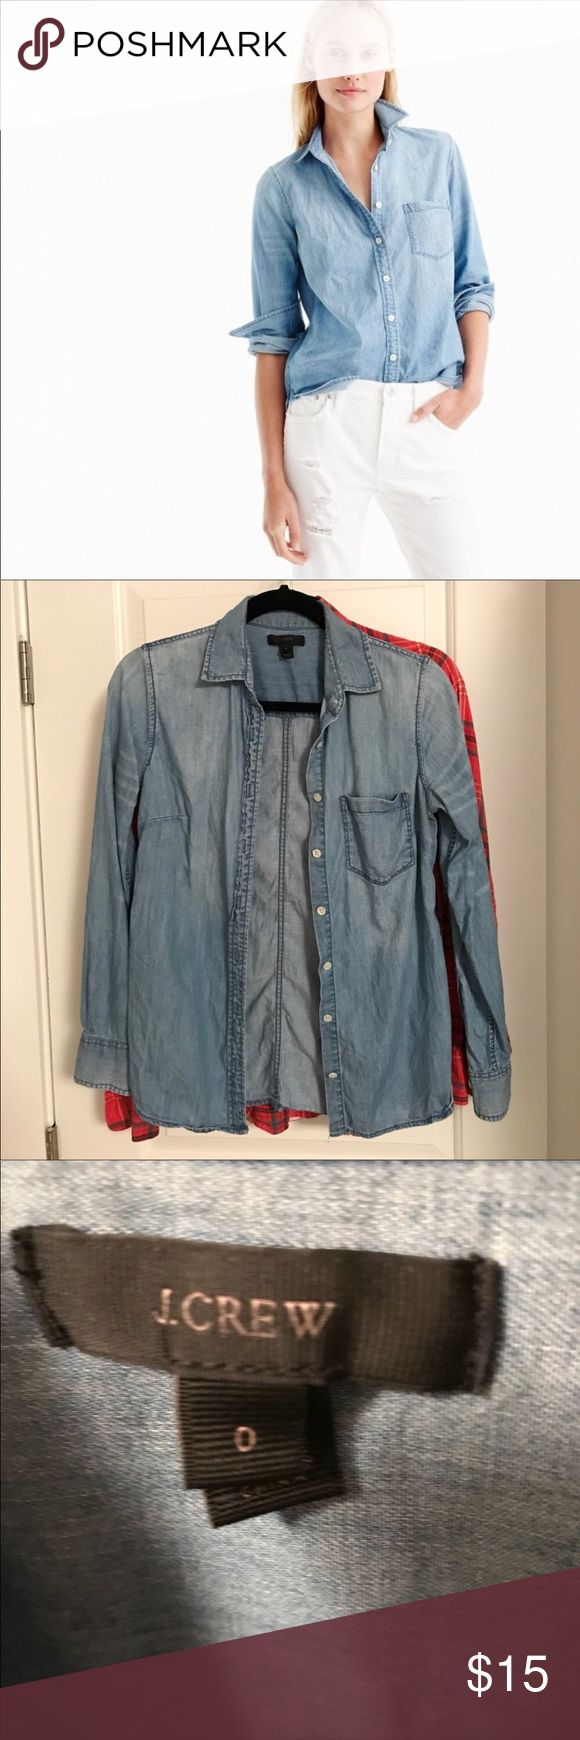 """J. Crew —Always Chambray shirt Has been worn but has lots of life left. Price reflects wear.  PRODUCT DETAILS Washed for a soft, lived-in look and tailored for a boyish fit (emphasis on the """"ish""""—it's quite flattering). This is the one you'll pick up in multiples. Yeah, it's just that good. For more ways to wear it, watch our Style Hacks video now.  Cotton. Button placket. Chest pocket. Machine wash. Import. Item C9310. J. Crew Tops Button Down Shirts"""